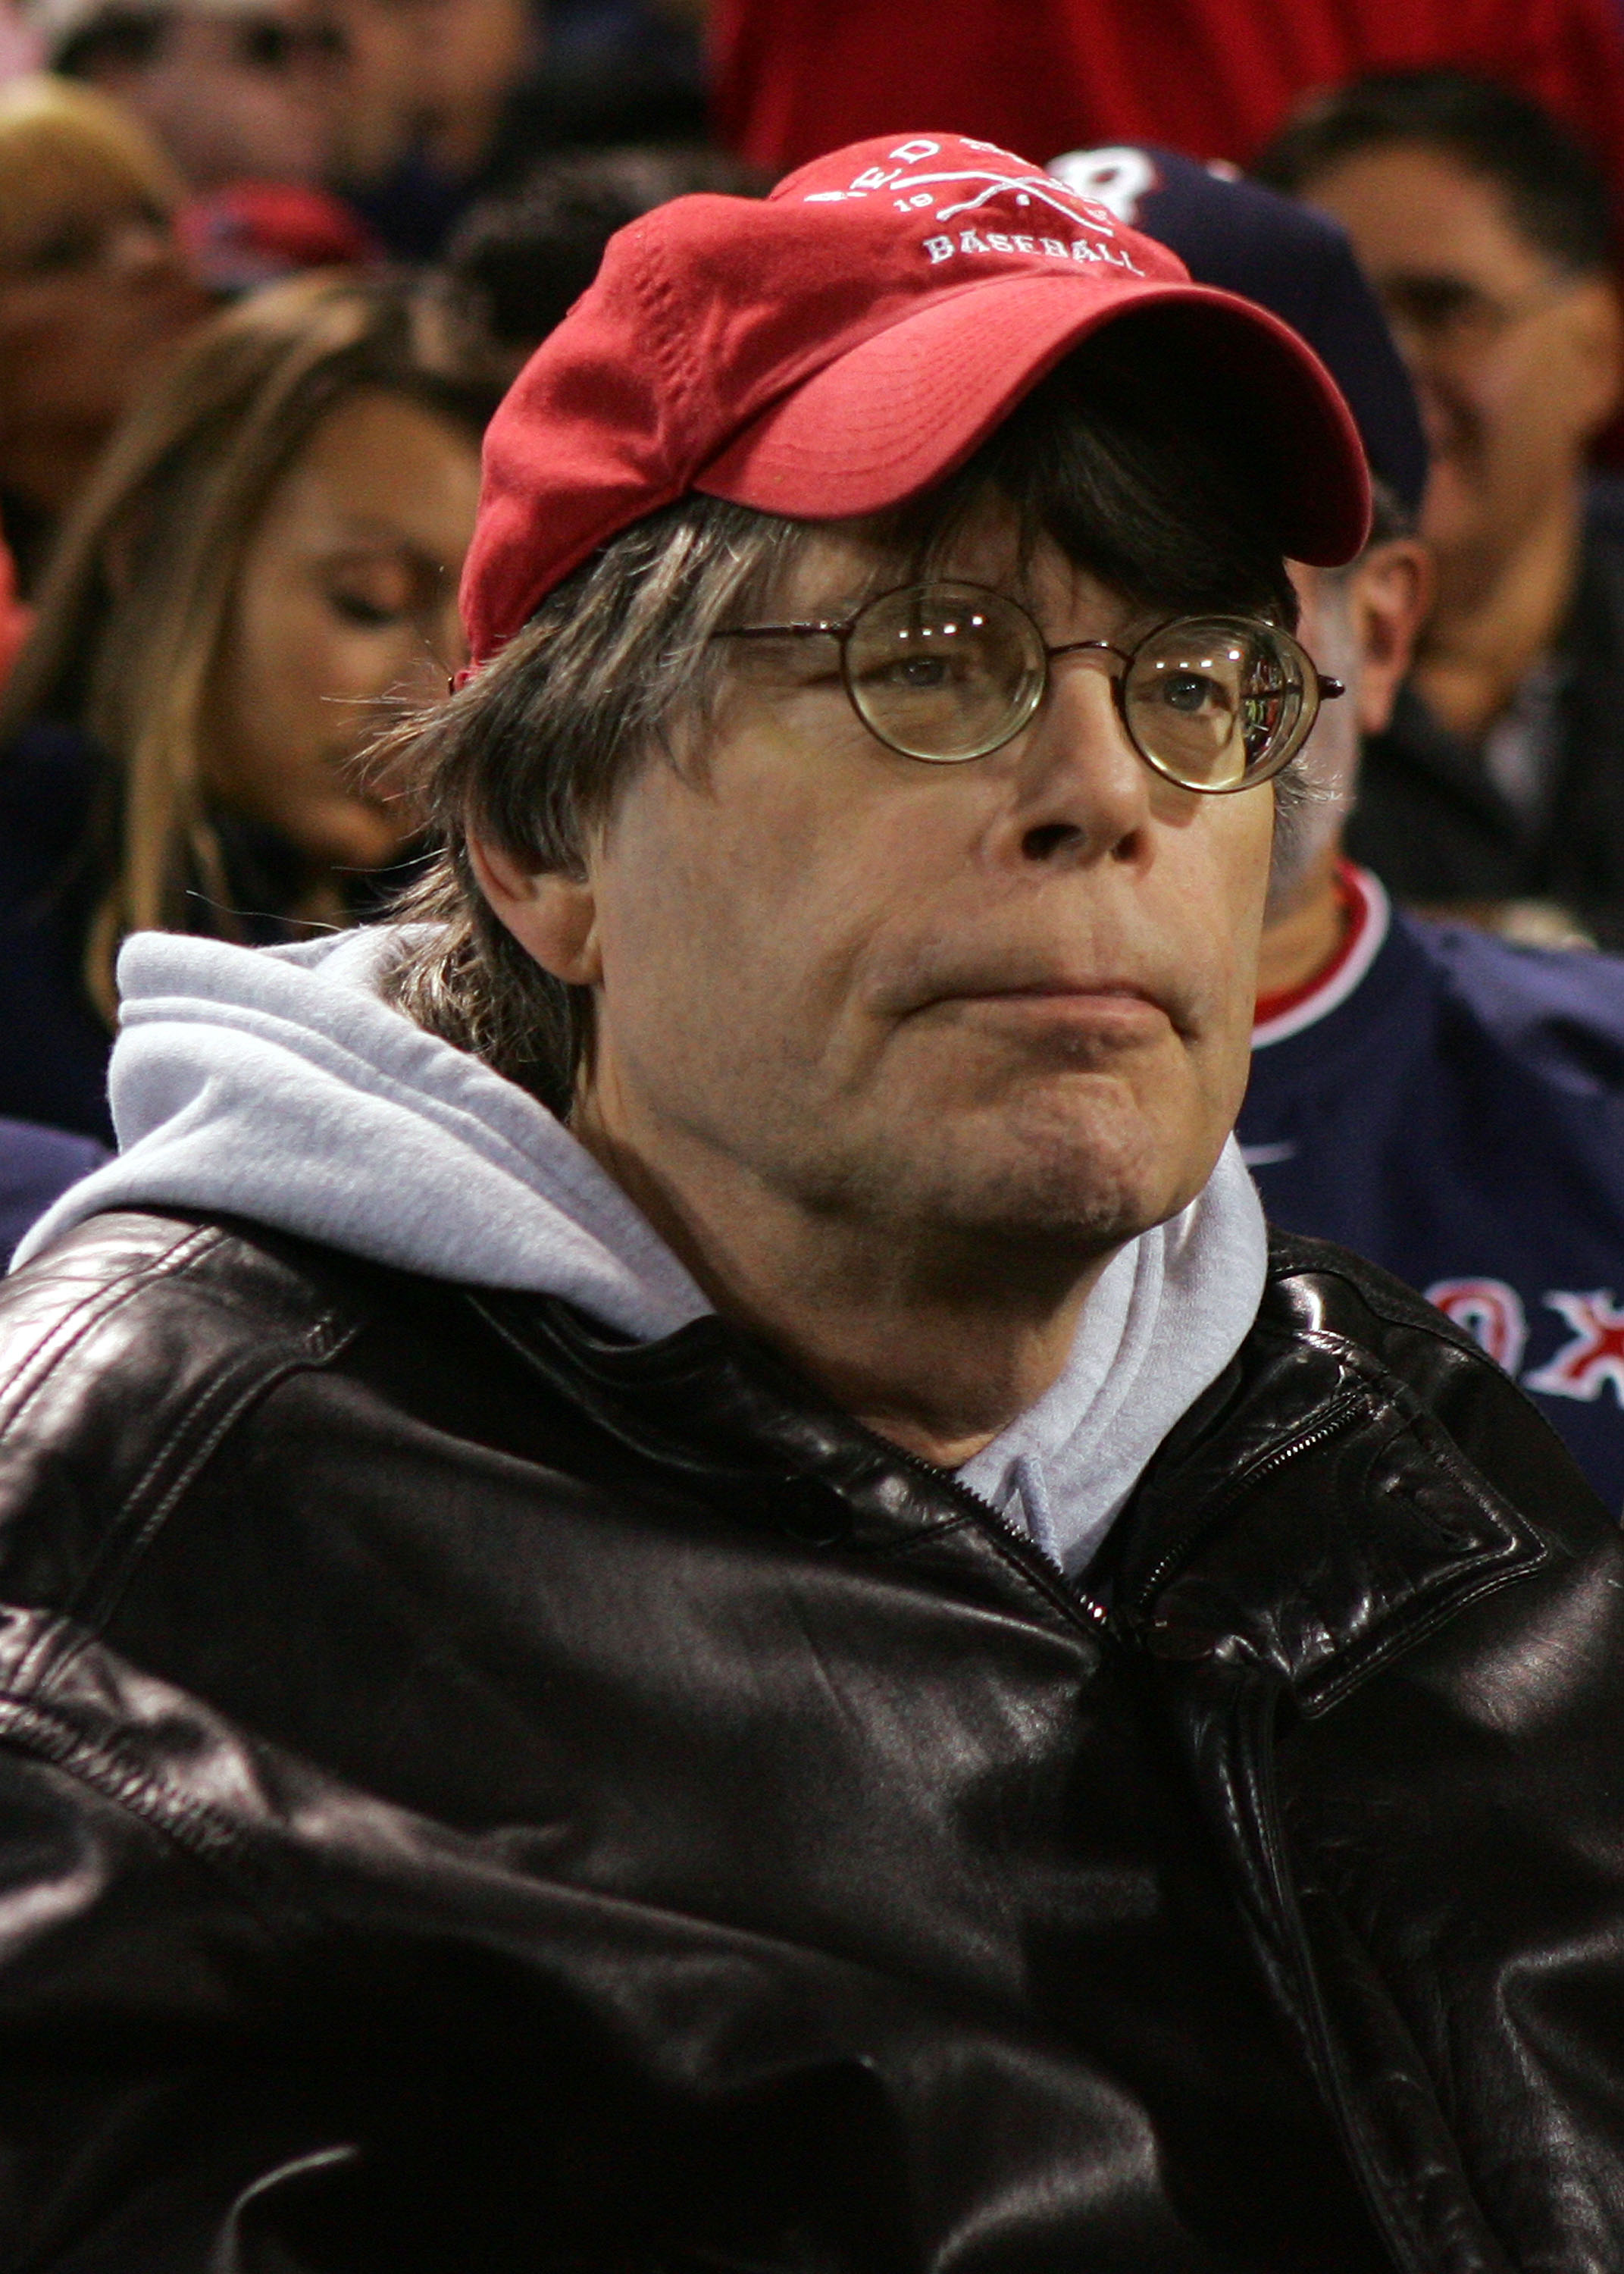 BOSTON - OCTOBER 13:  Author Stephen King watches as the Tampa Bay Rays play against the Boston Red Sox during game three of the American League Championship Series against during the 2008 MLB playoffs at Fenway Park on October 13, 2008 in Boston, Massach